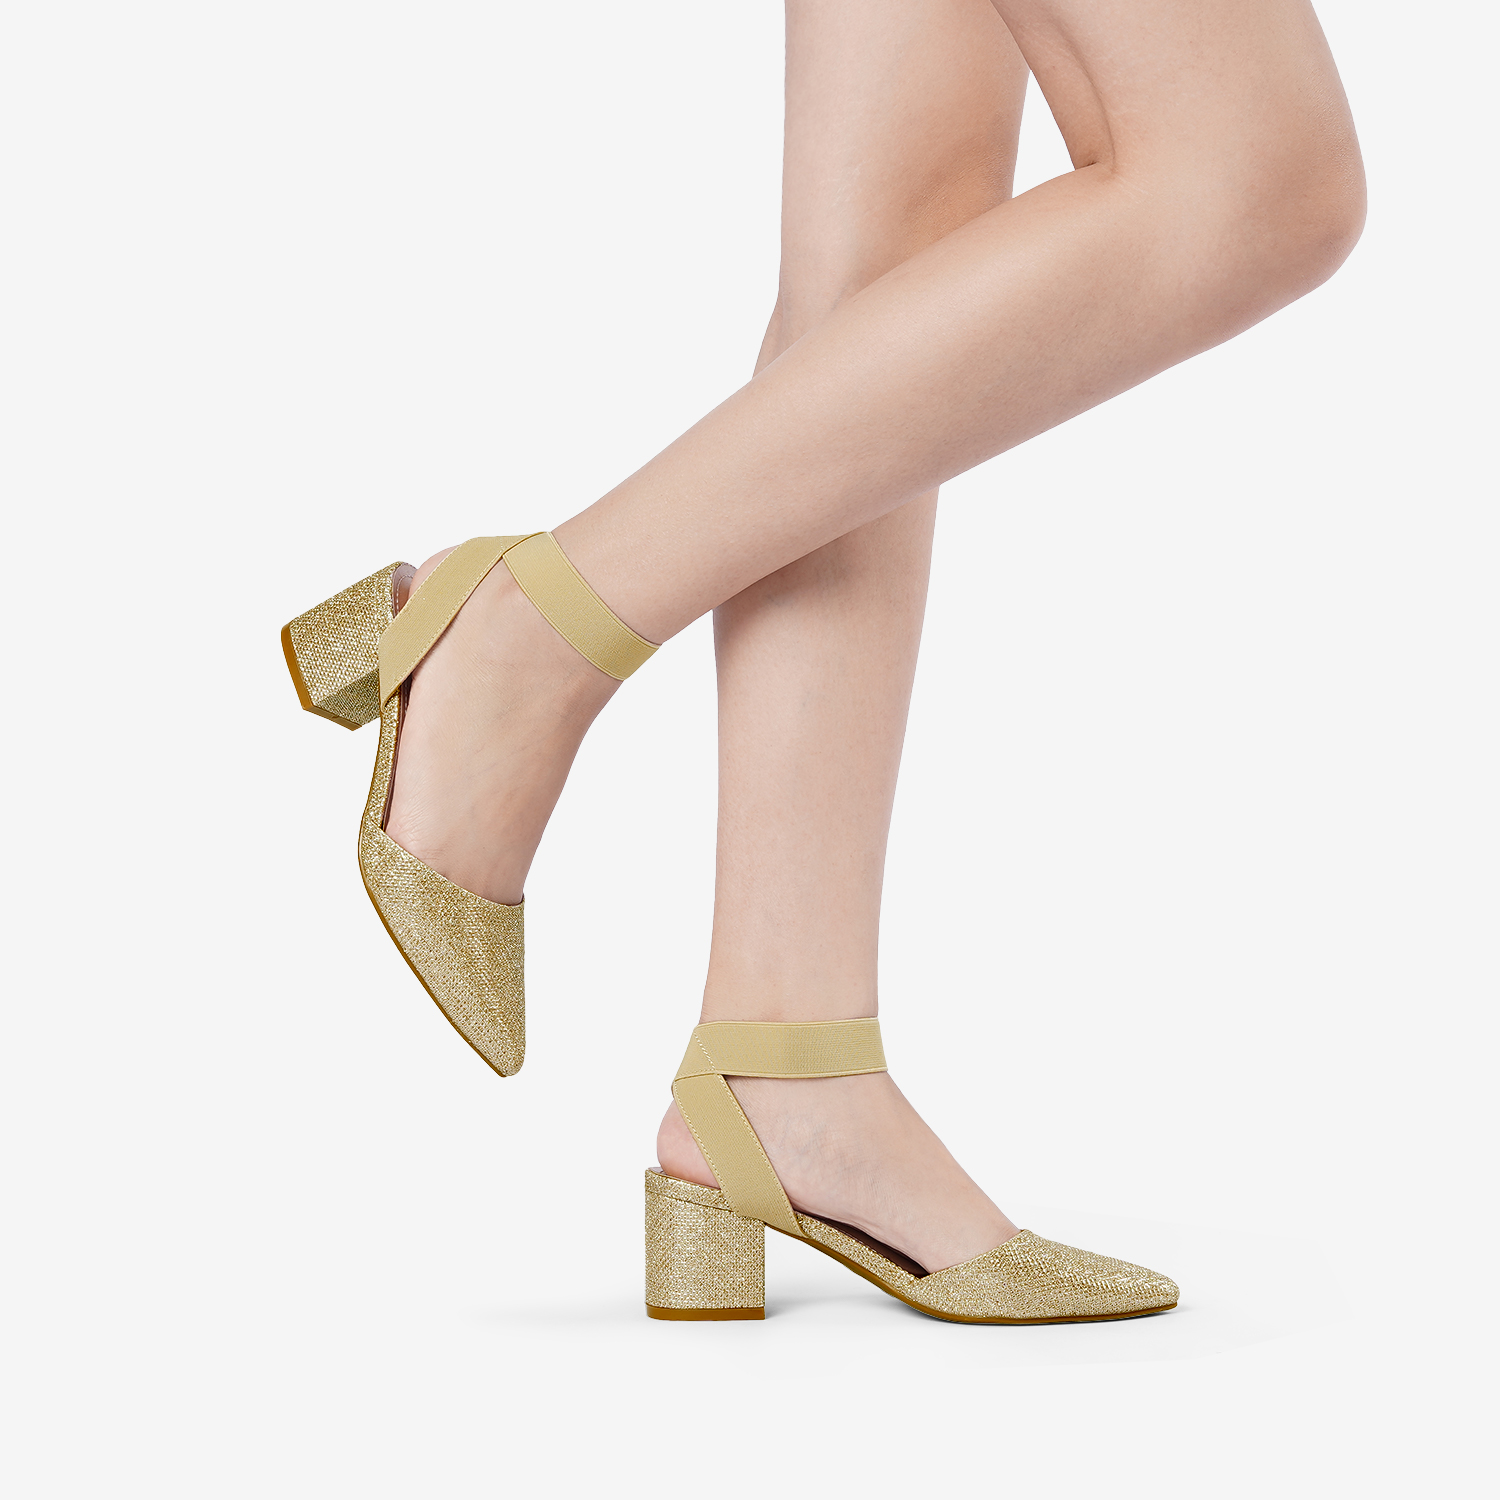 thumbnail 30 - Women-039-s-Elastic-Ankle-Strap-Pointed-Toe-Pump-Shoes-Low-Chunky-Heel-Dress-Pumps